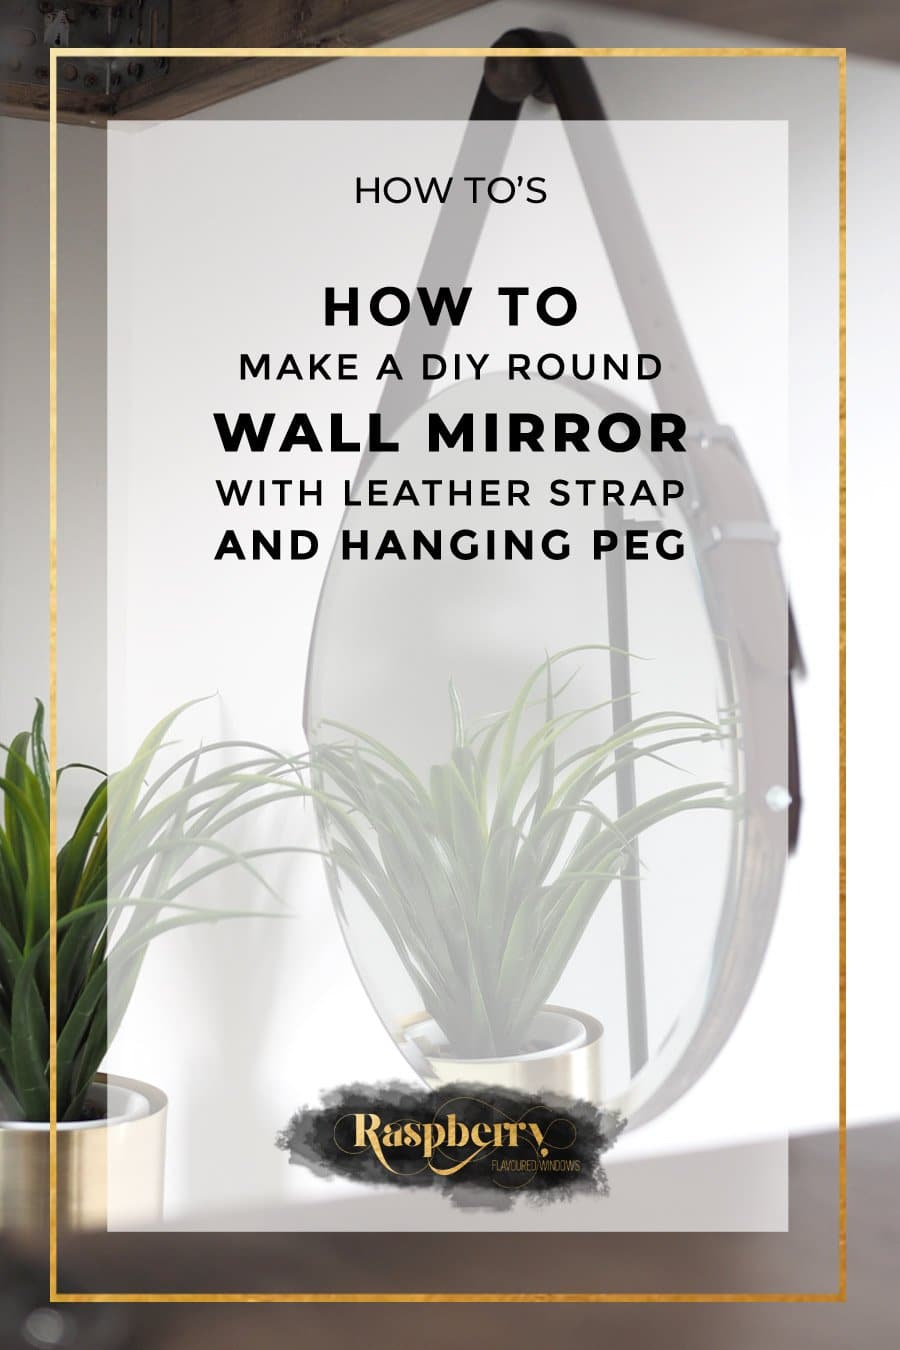 How to Make a DIY Round Wall Mirror with Leather Strap and Hanging Peg